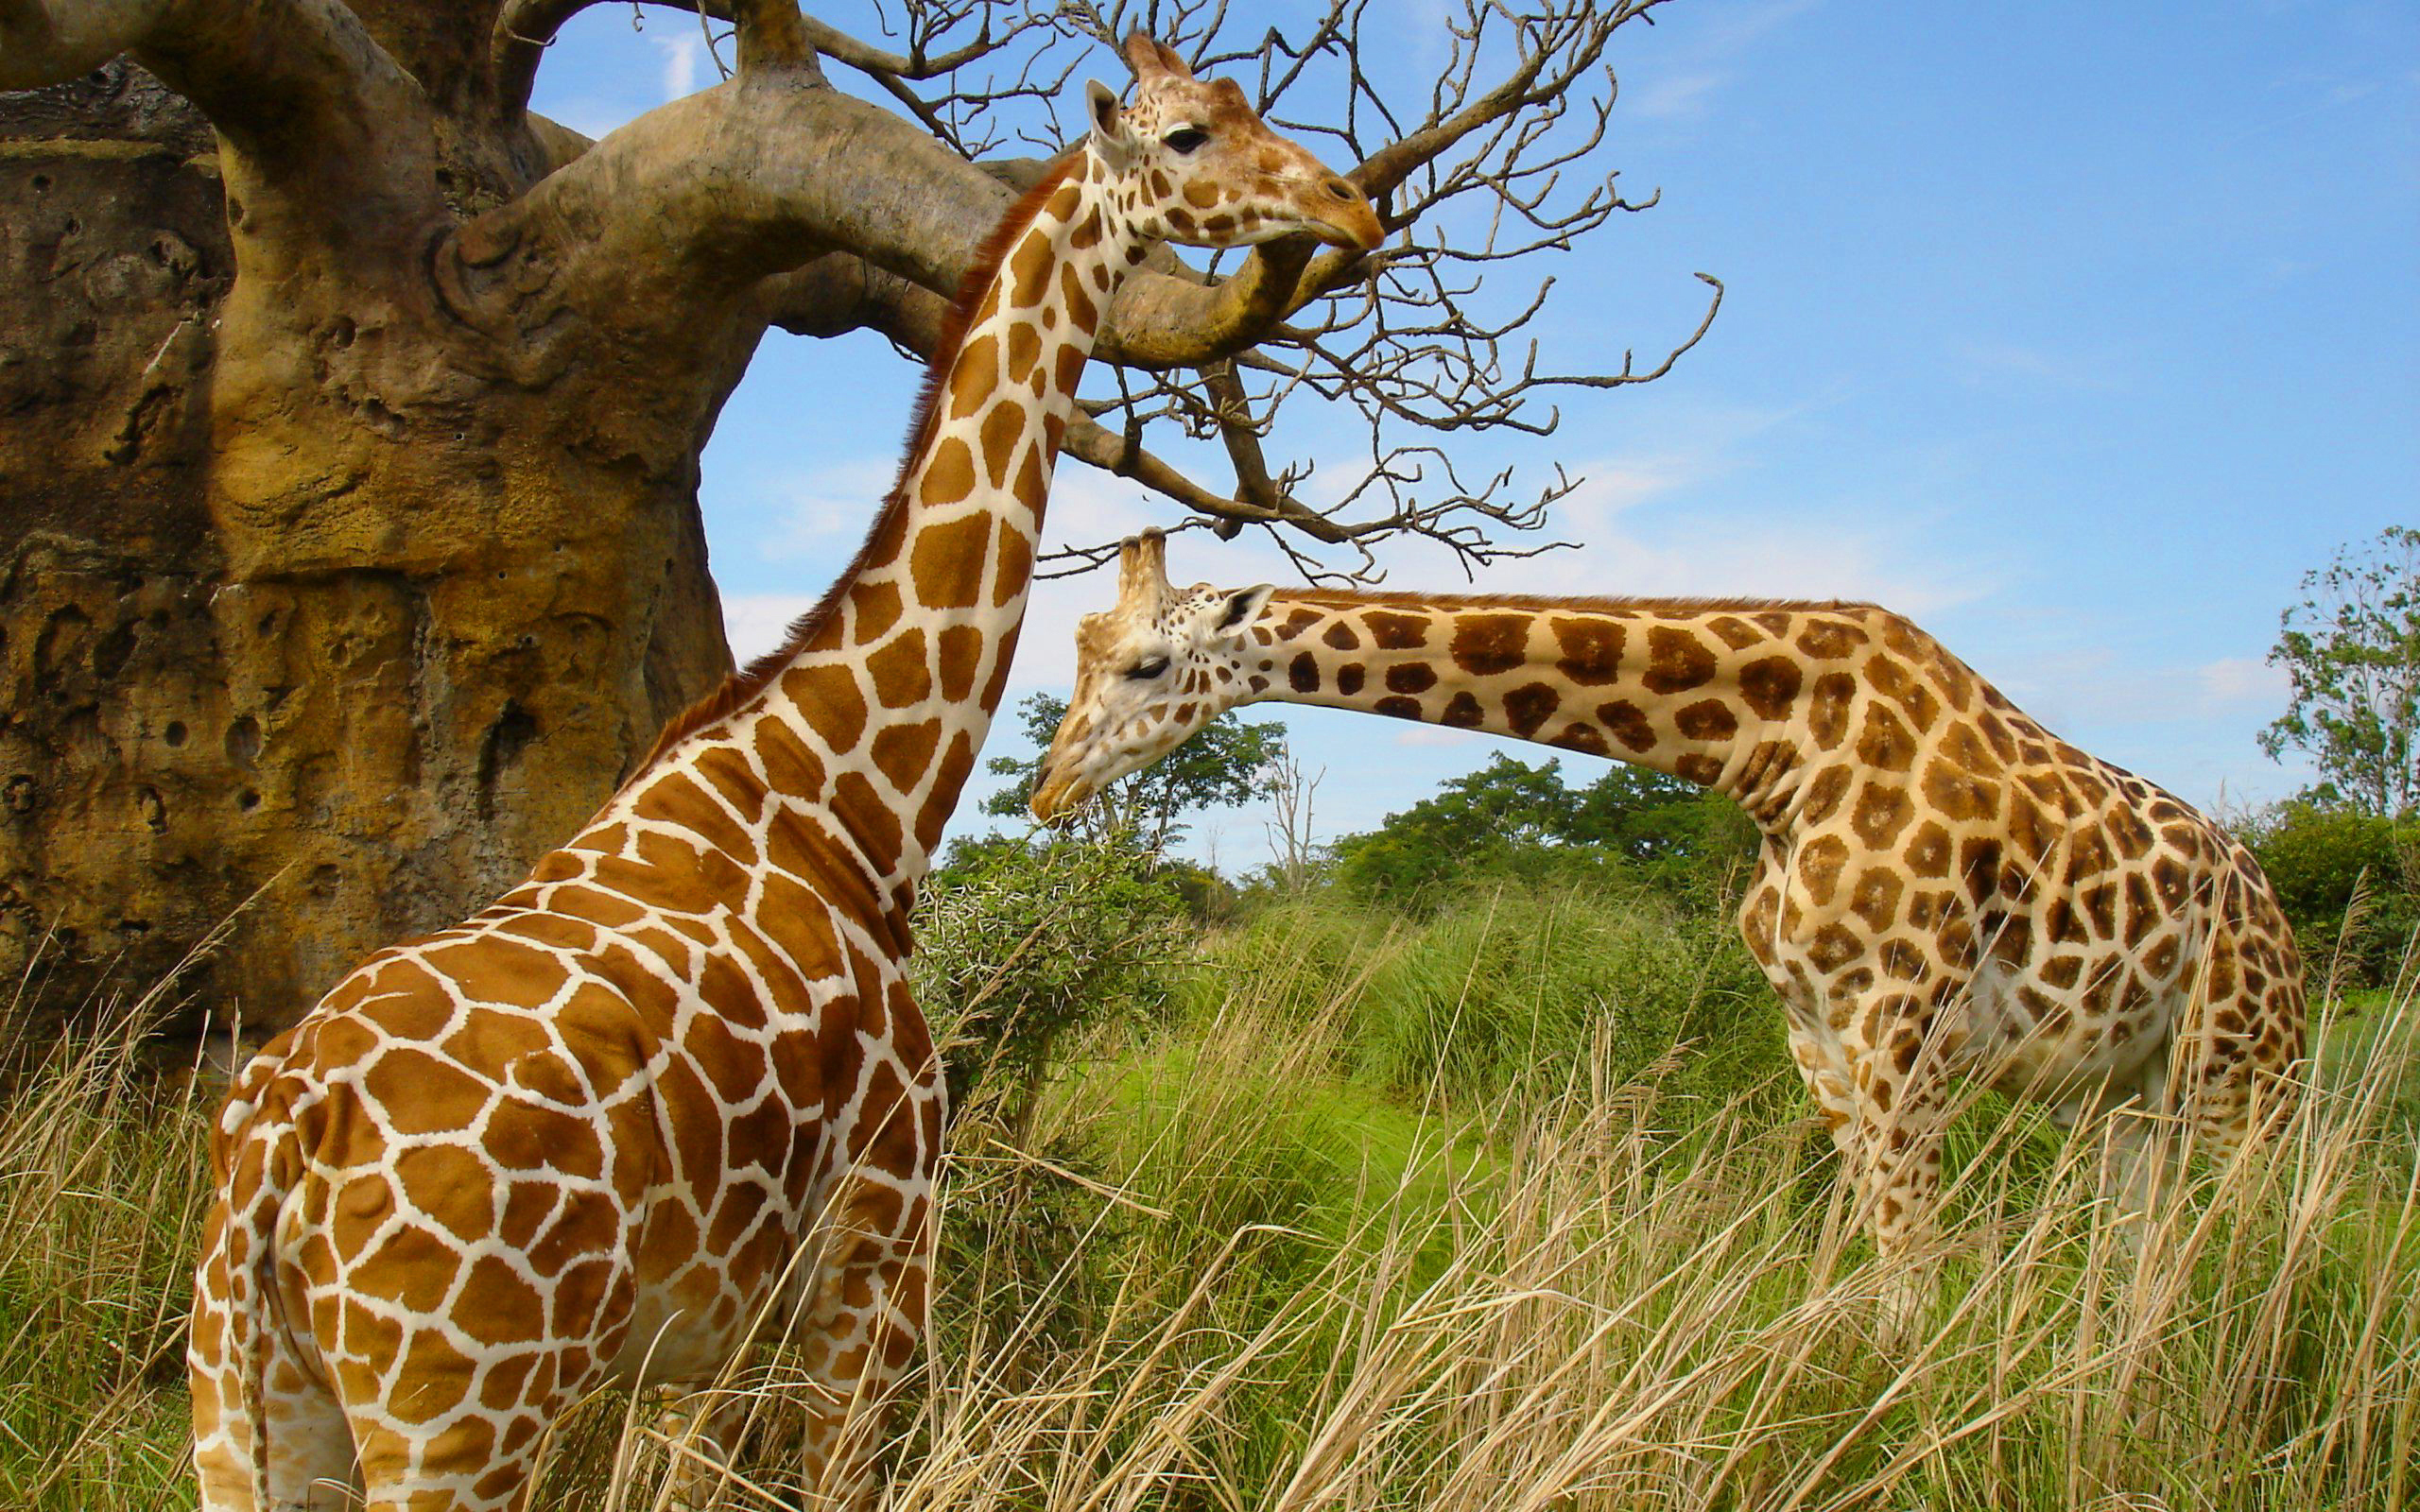 giraffes wallpapers high quality download free